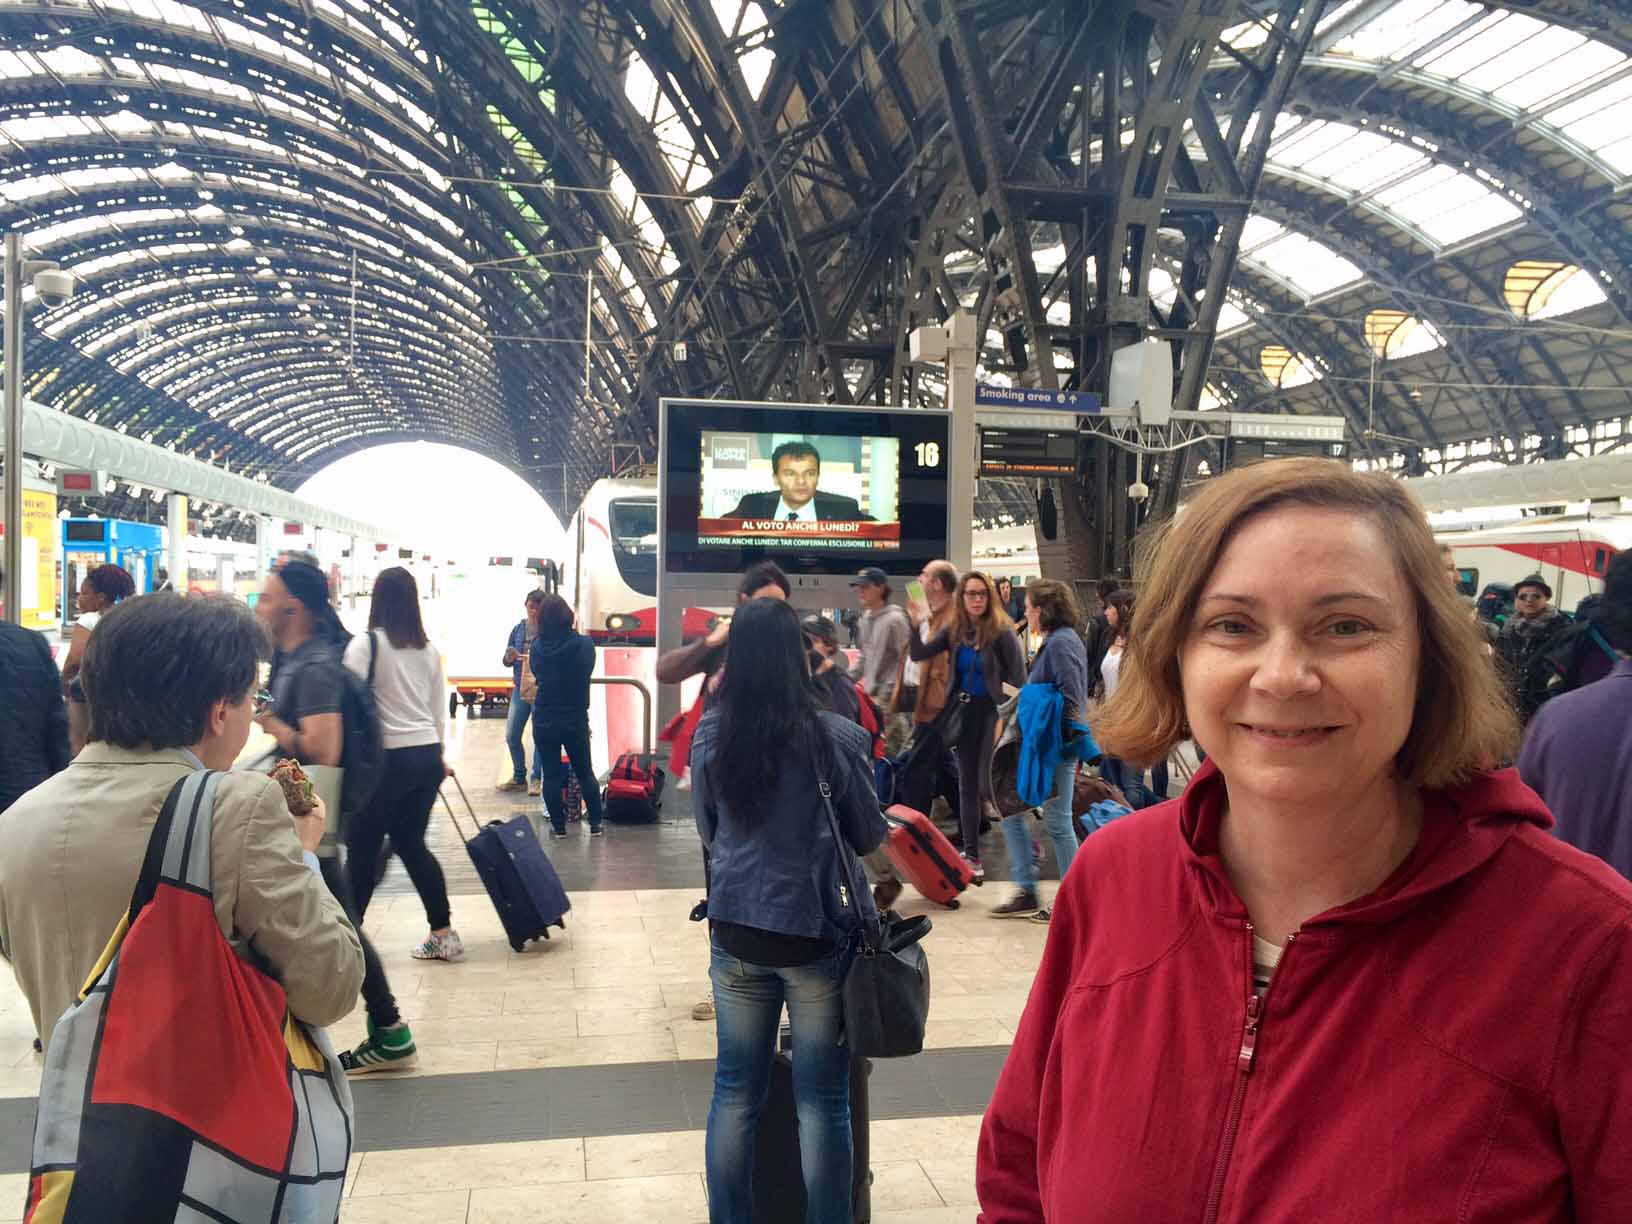 Catching trains in Italy requires speed and coordination